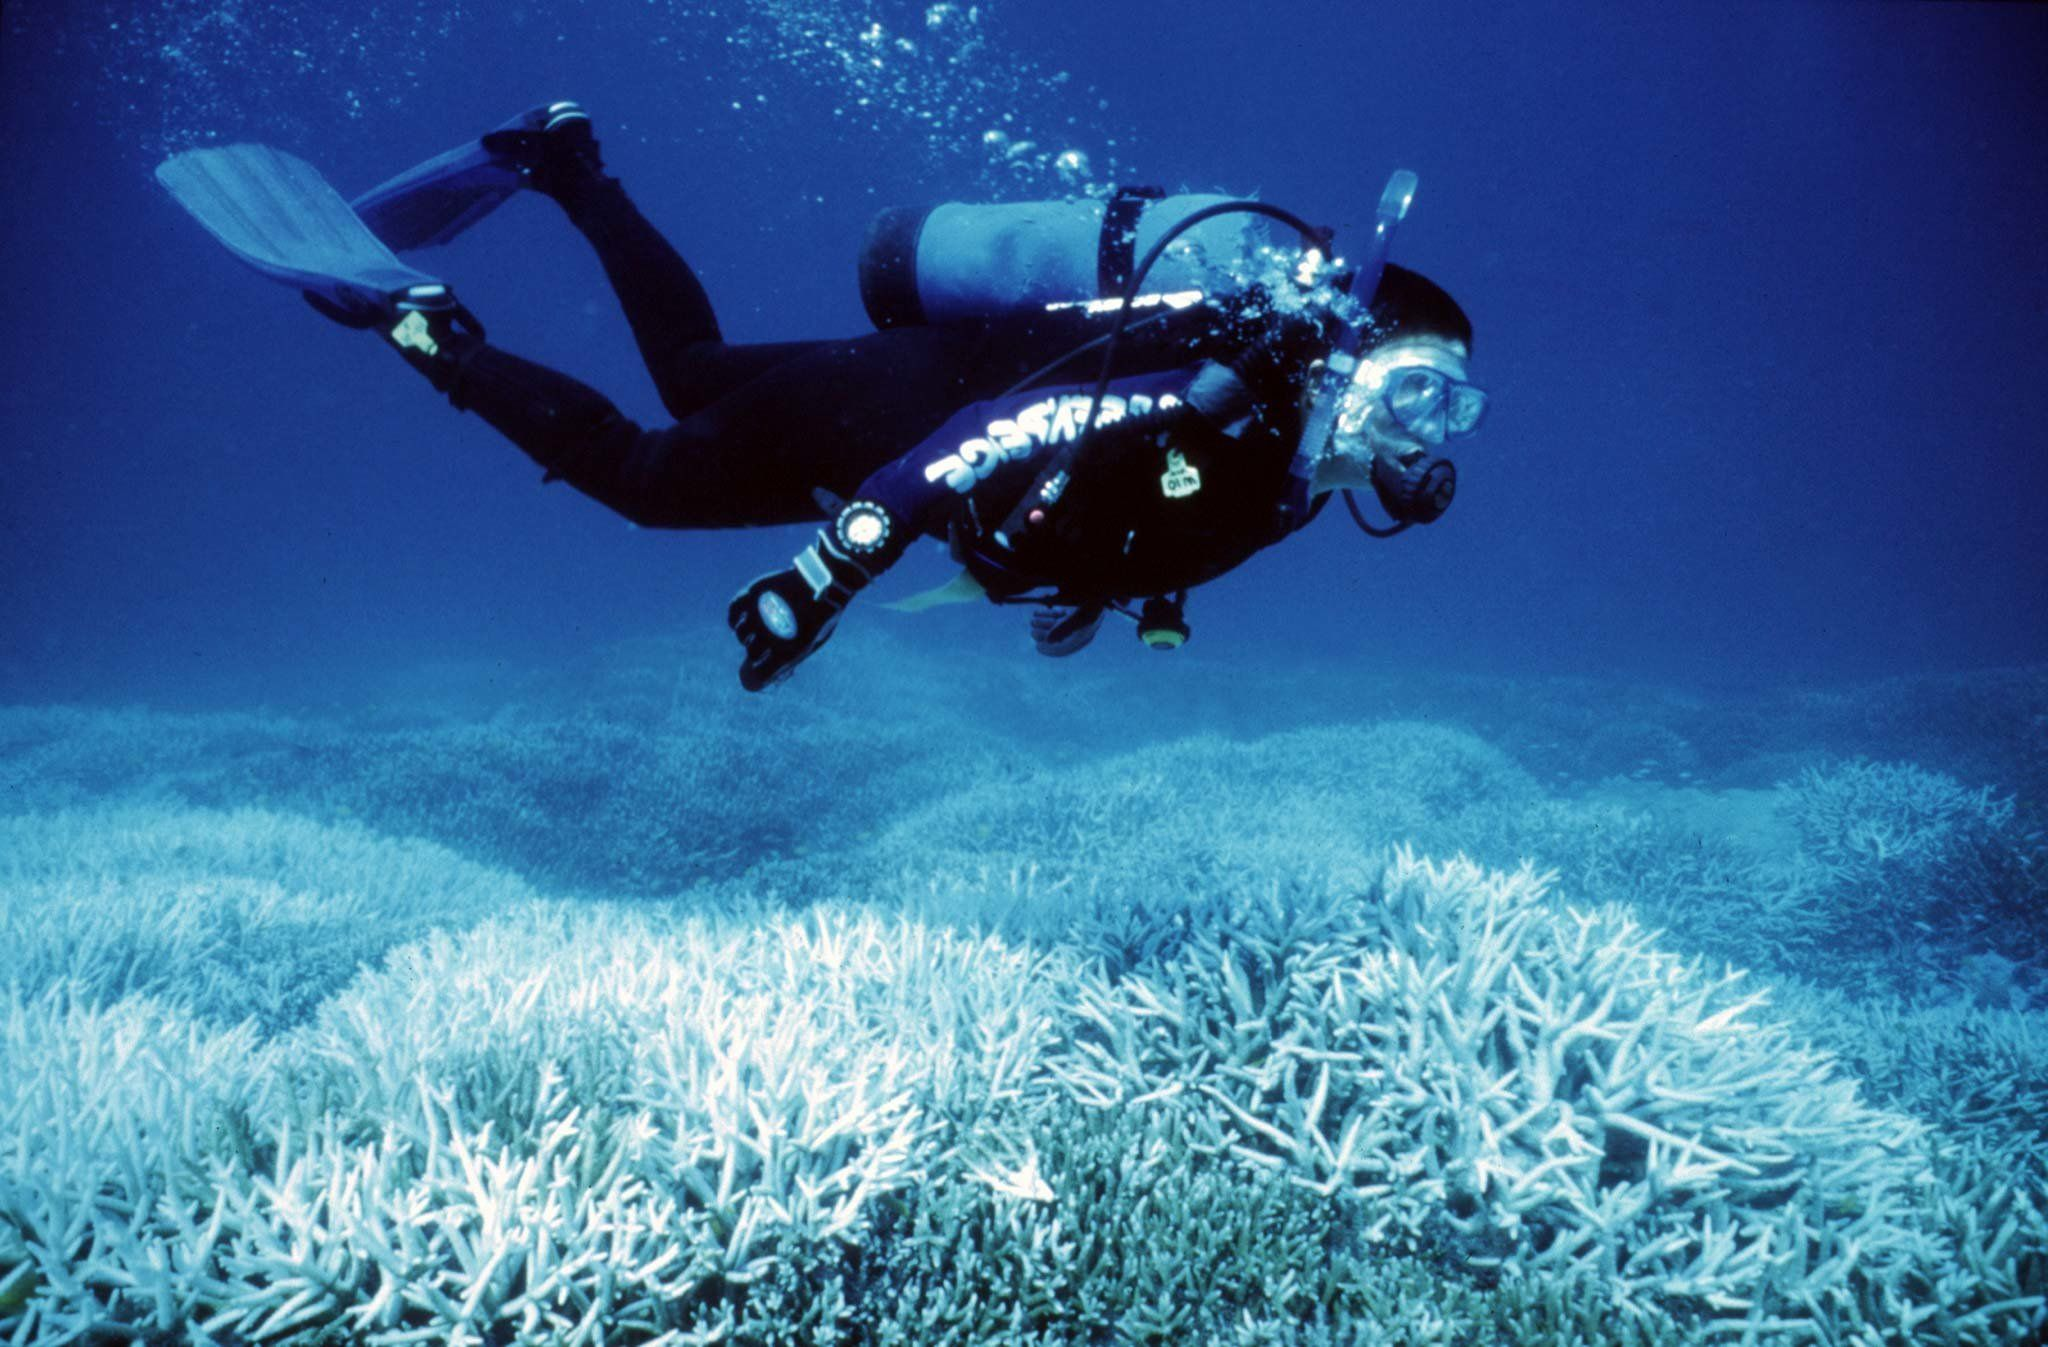 Marine activist Suzanne Kavanagh swims above coral suffering from bleaching on Australia's Great Barrier Reef. The world's largest coral structure is experiencing its worst ever case of bleaching, which scientists fear could threaten its fragile marine environment. Picture taken 25APR98.  REUTERS/Handout